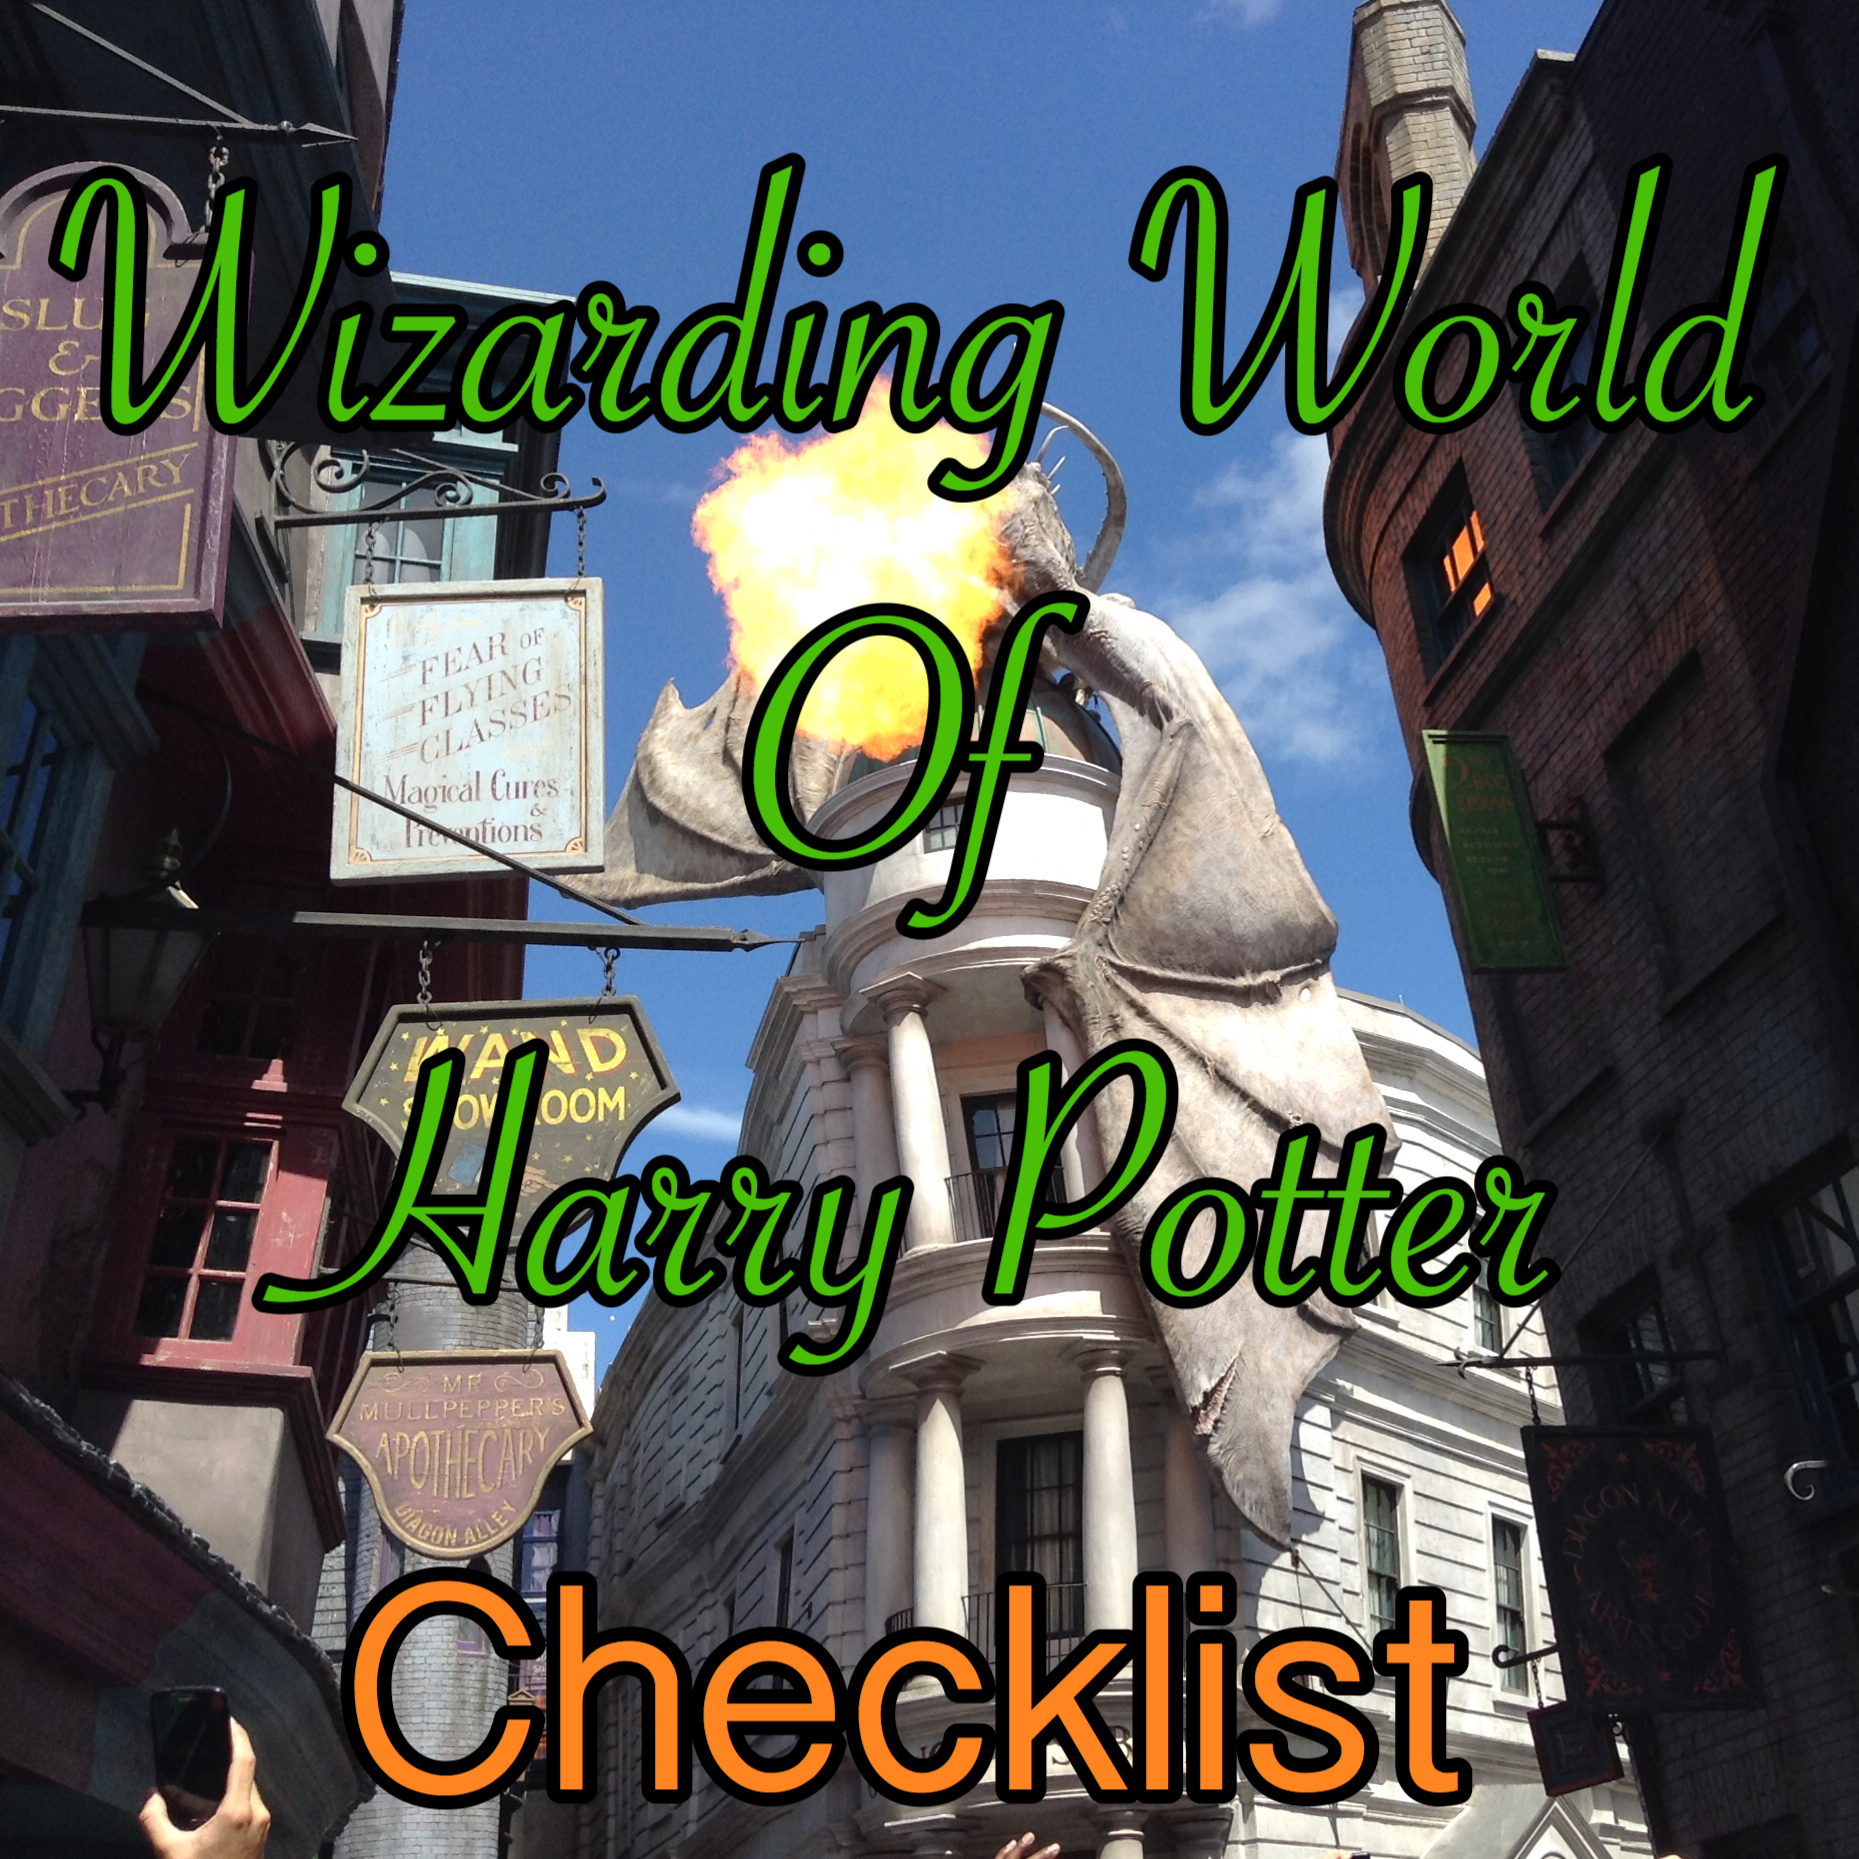 Wizarding World of Harry Potter Checklist